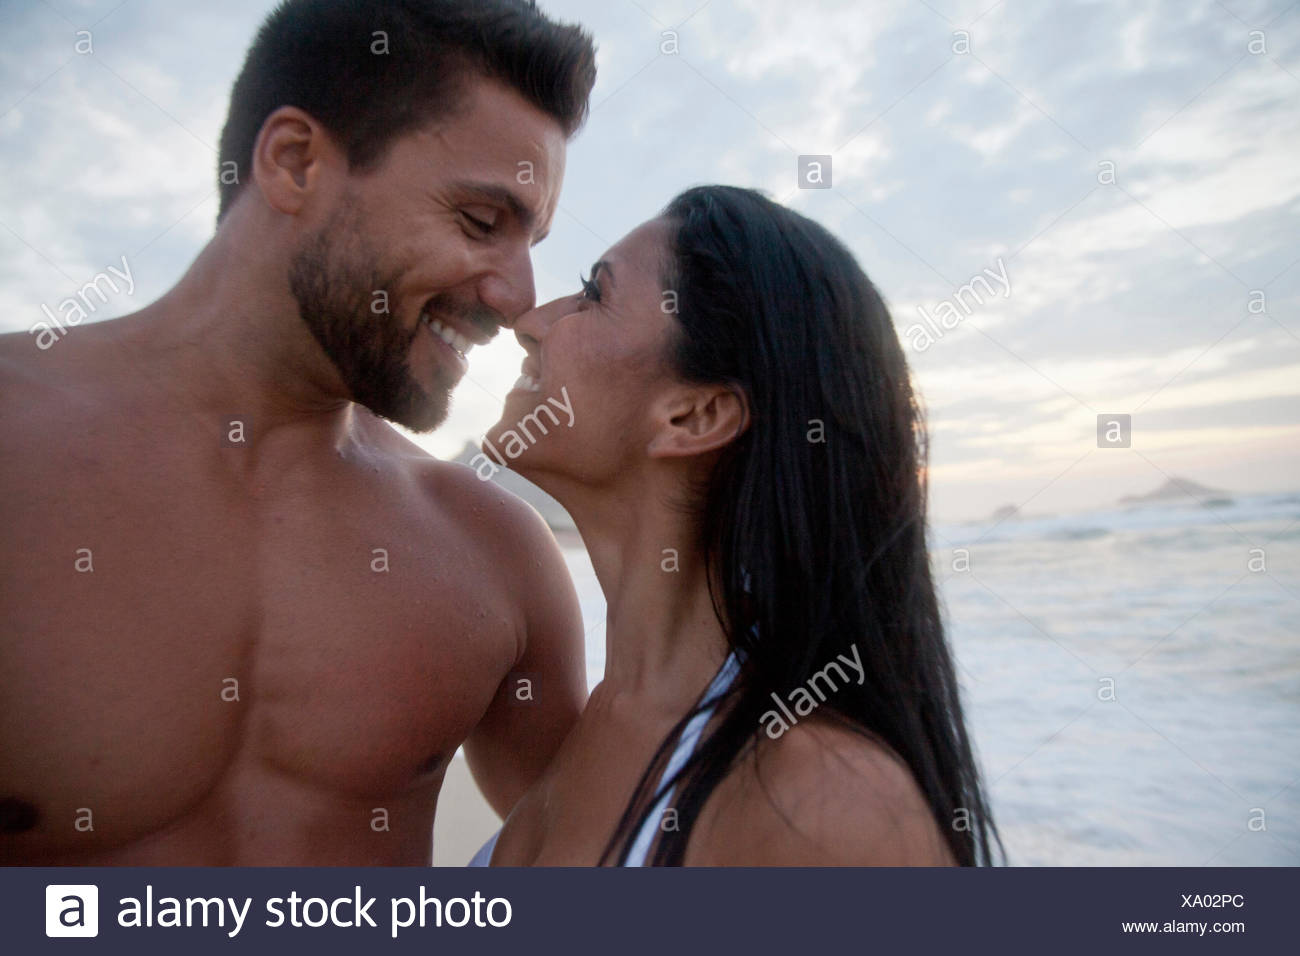 Mid adult couple standing on beach, face to face, touching noses - Stock Image